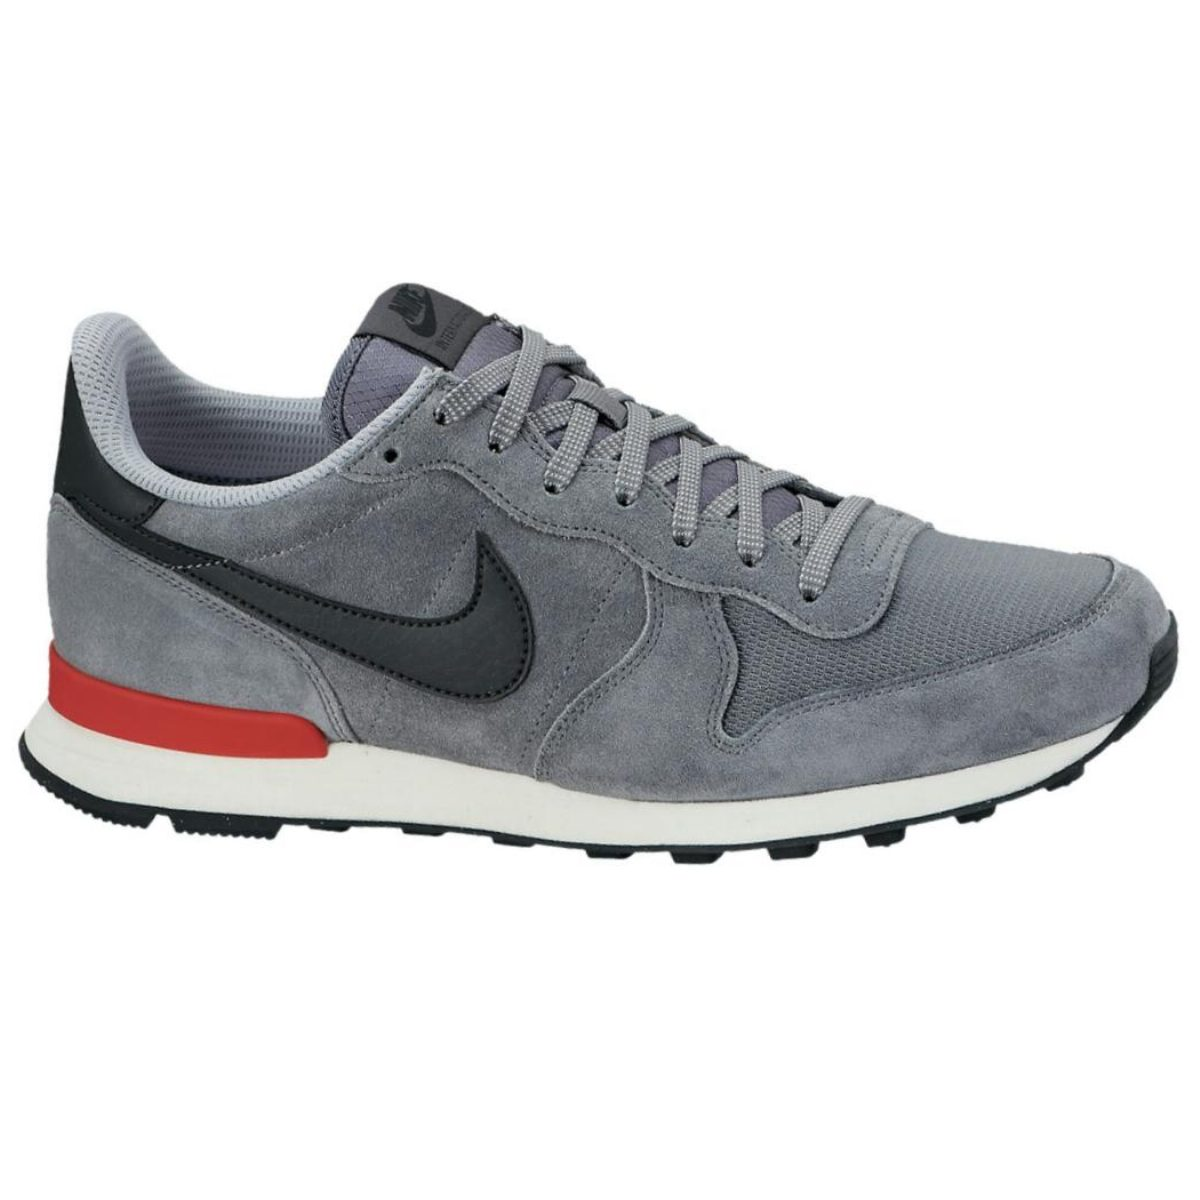 nike internationalist leather schuhe turnschuhe sneaker. Black Bedroom Furniture Sets. Home Design Ideas